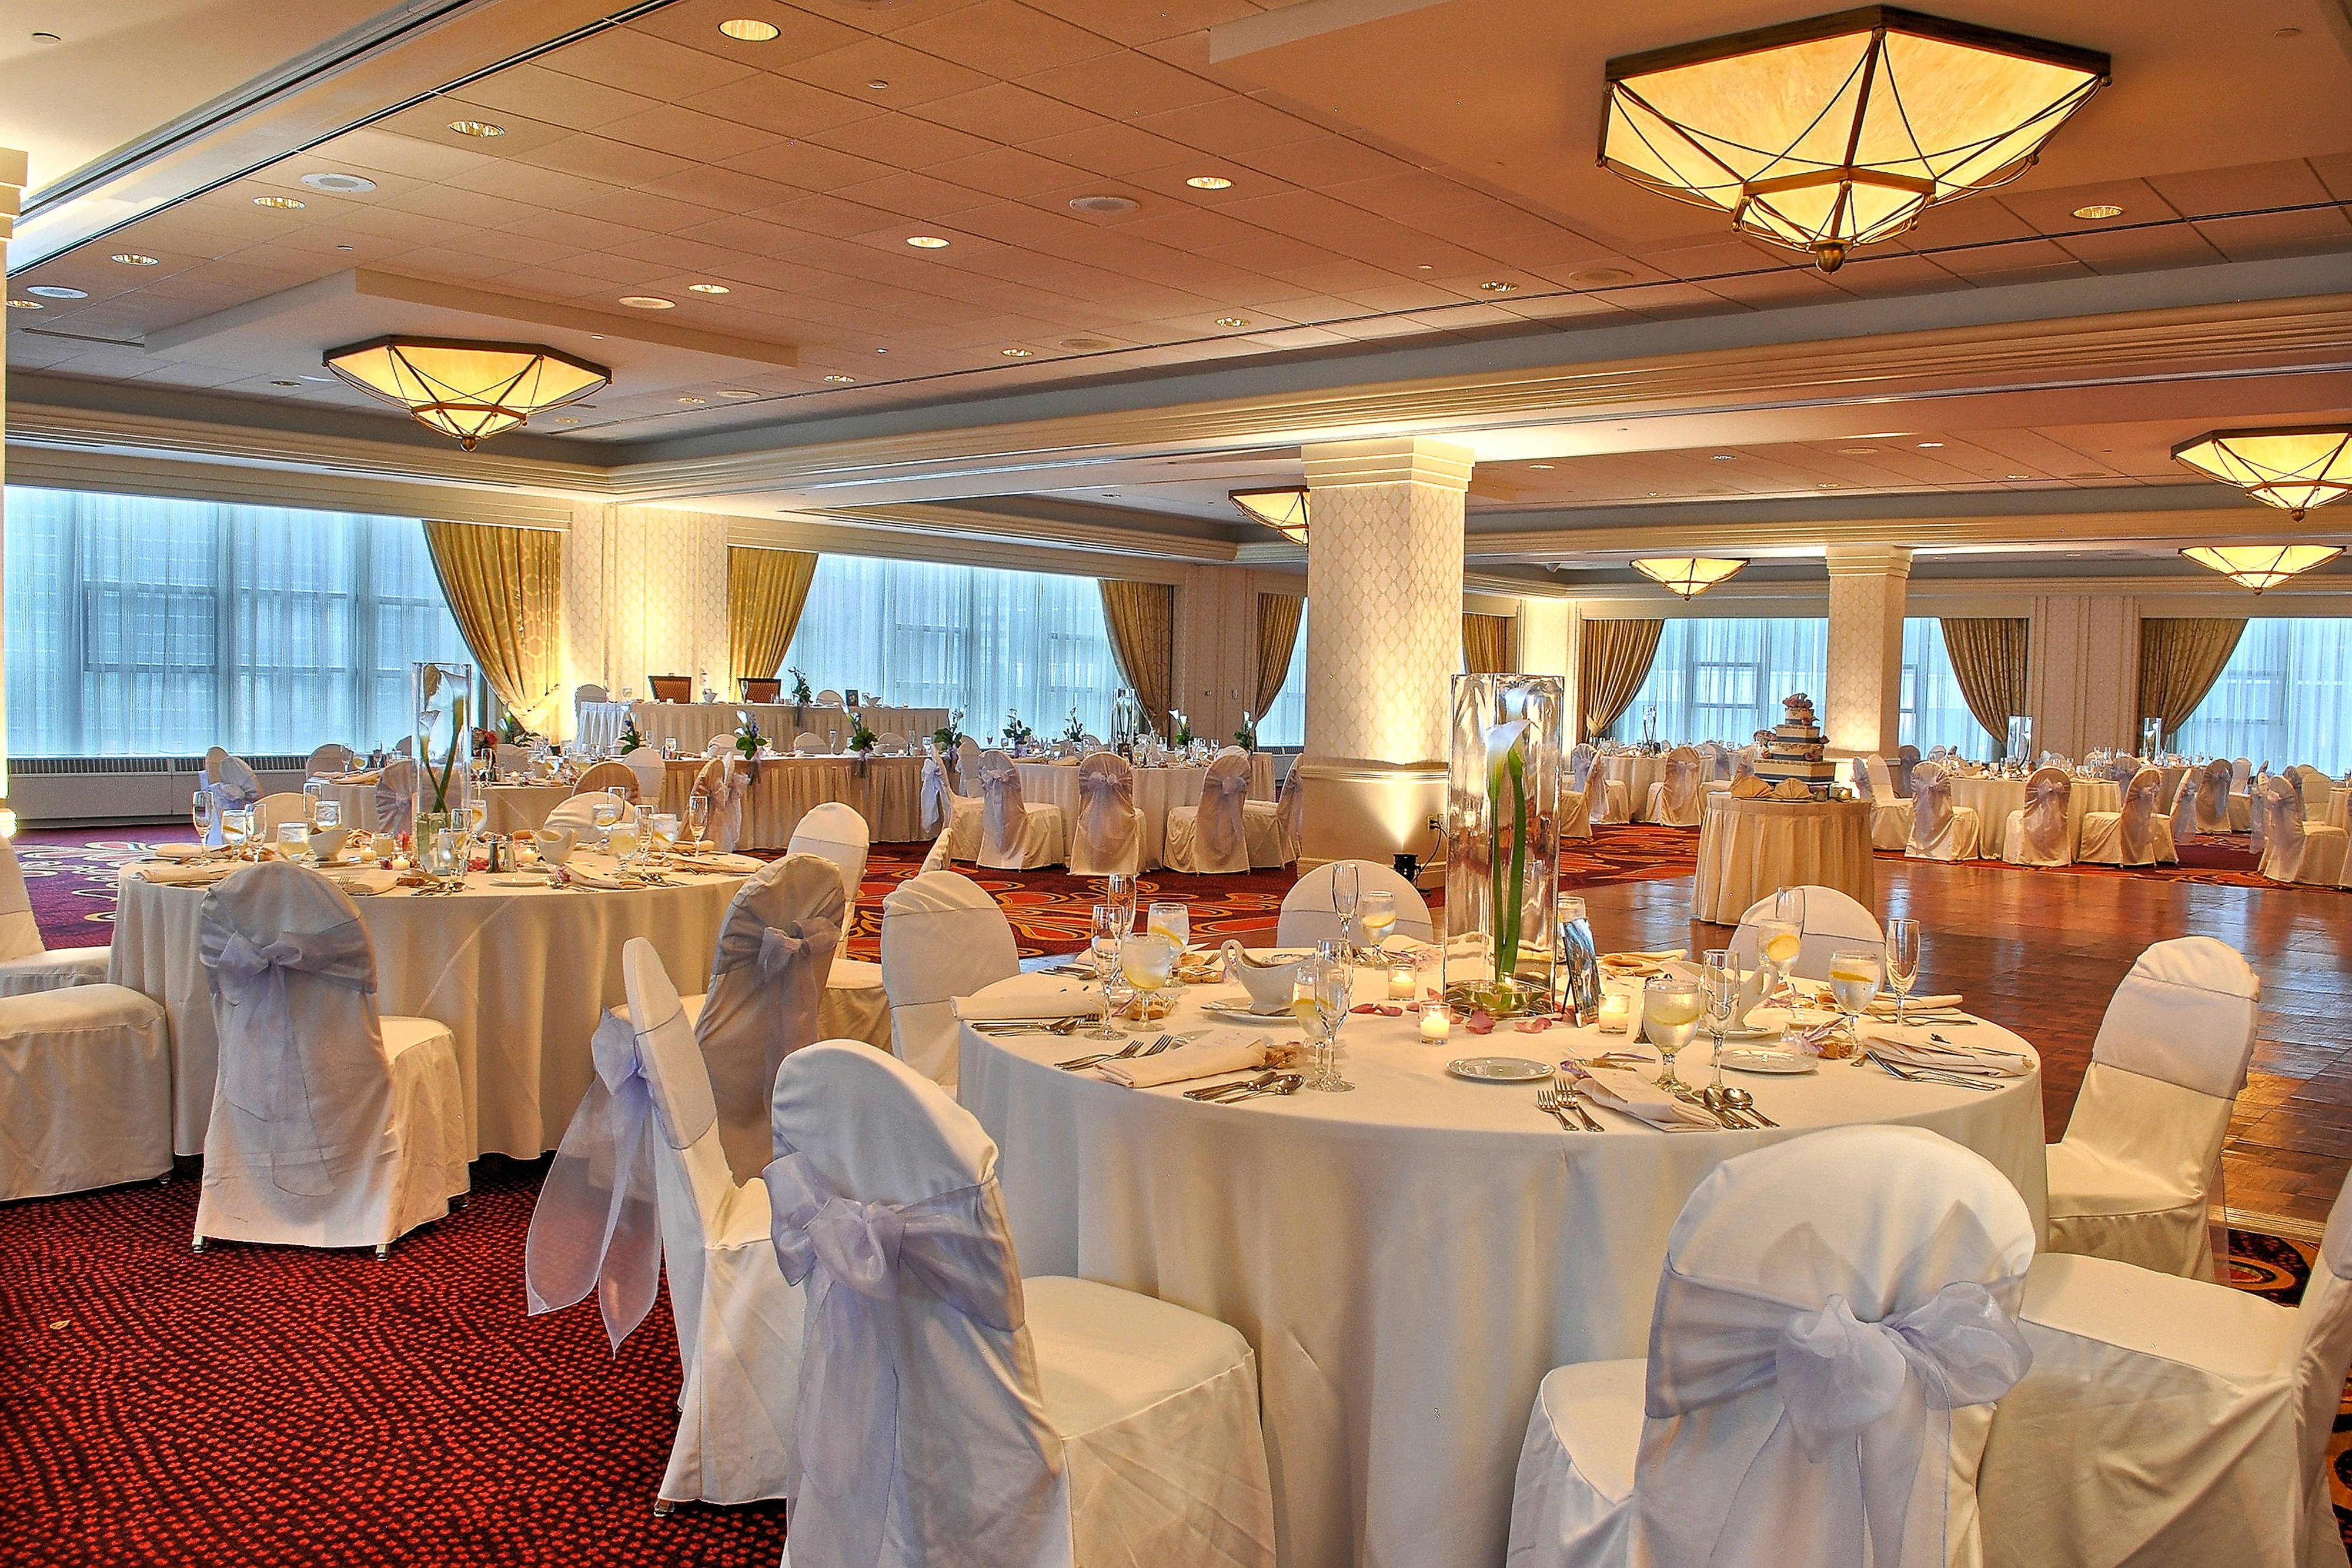 Wedding Venue In Pittsburgh, Pennsylvania